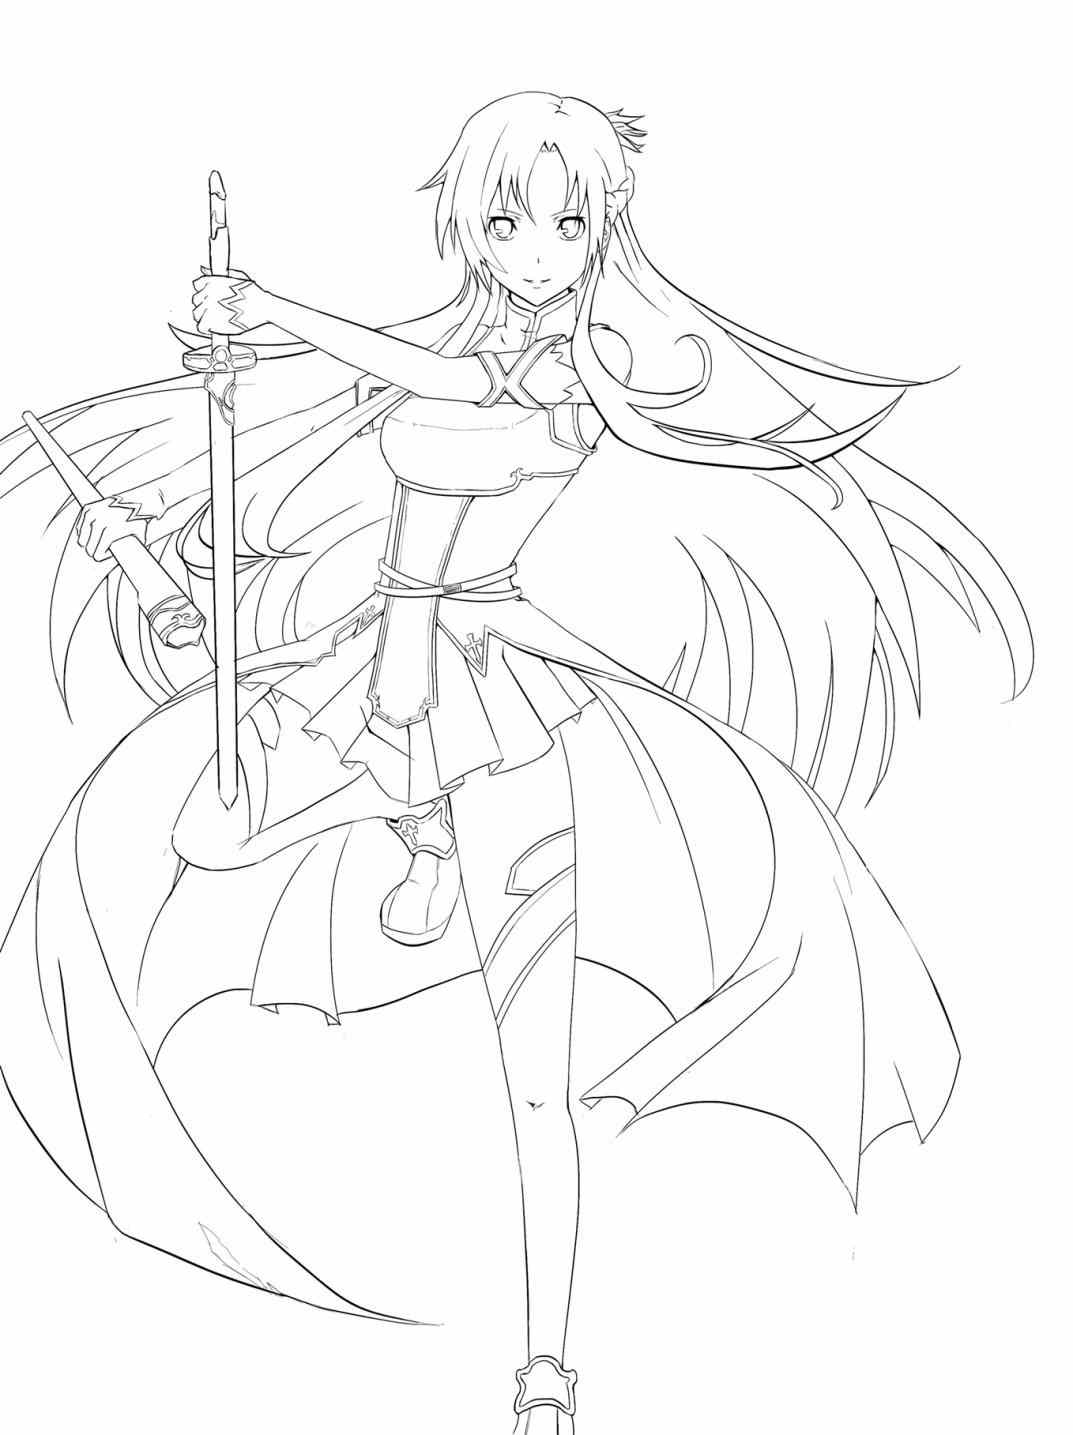 1073x1435 Luxury Kirito And Asuna Coloring Pages Sword Art Online